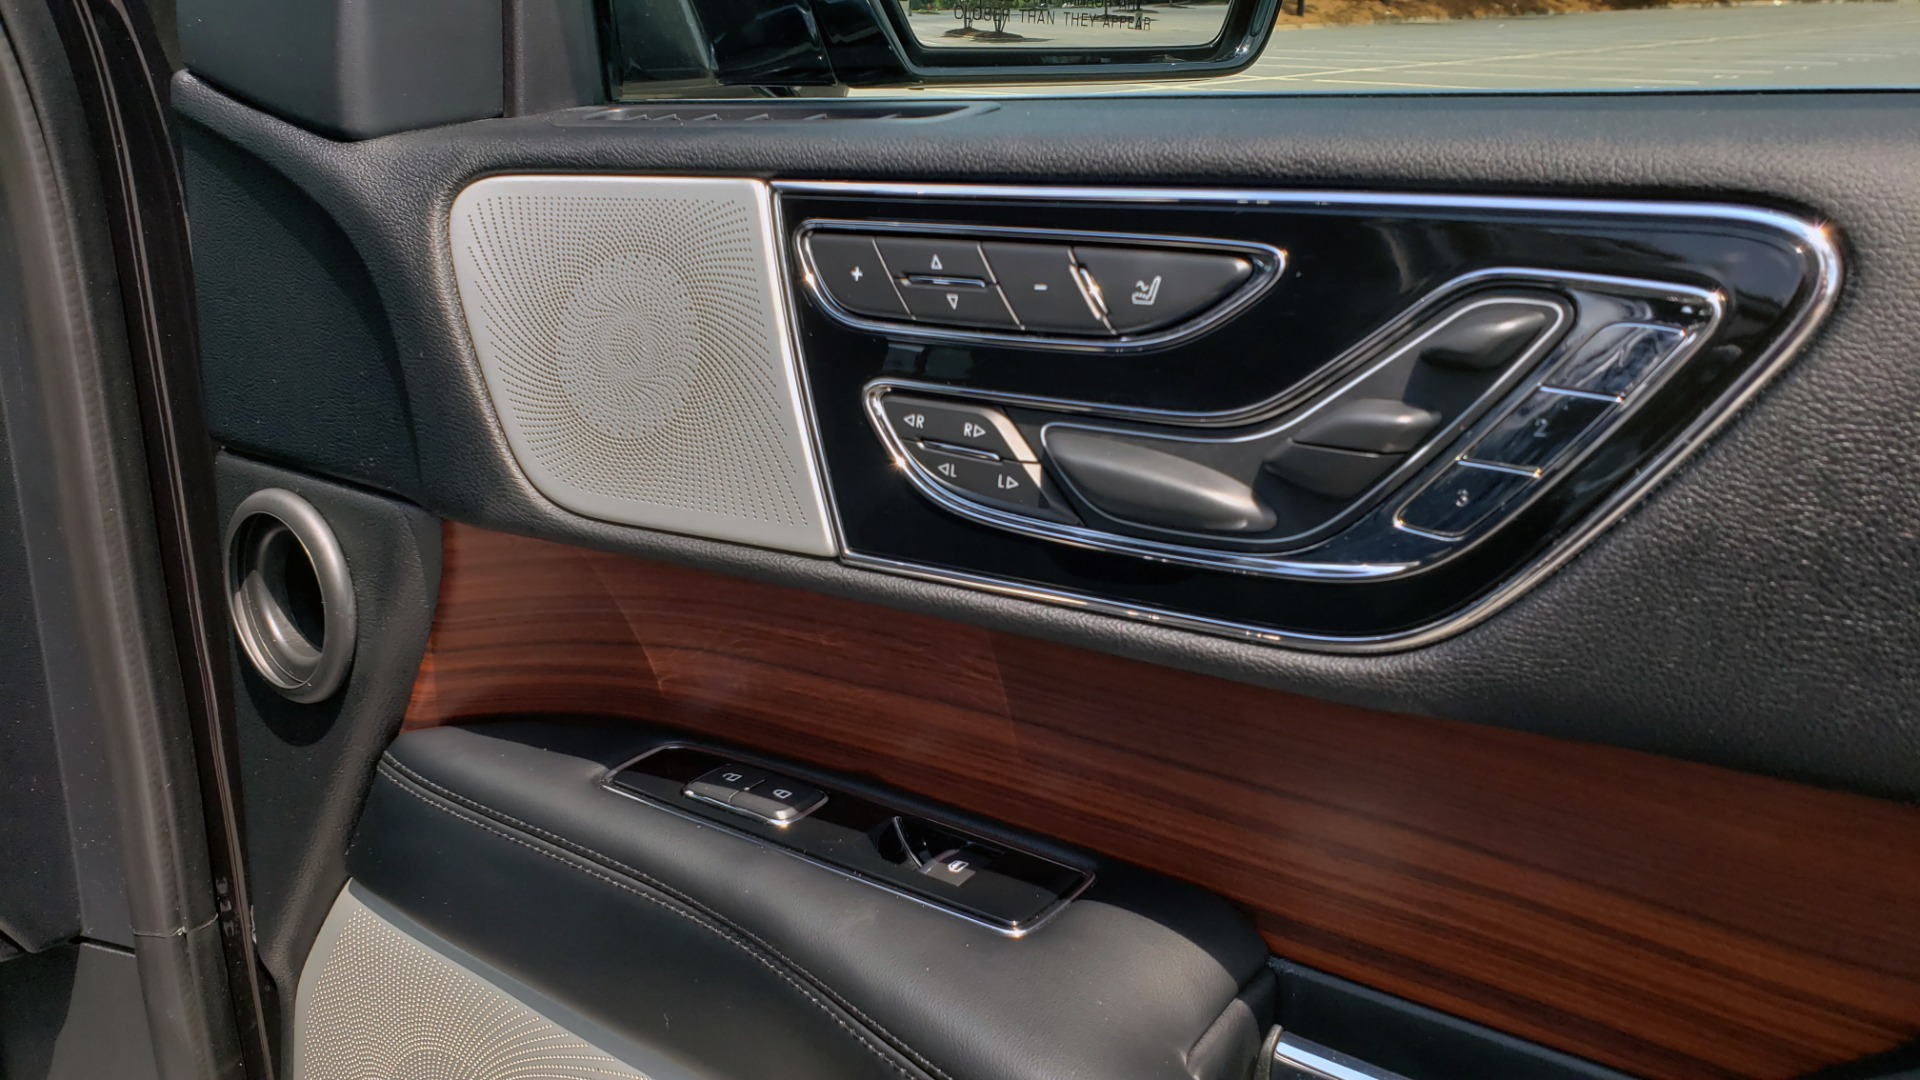 Used 2019 Lincoln NAVIGATOR RESERVE 4X4 / NAV / PANO-ROOF / REVEL ULTIMA AUDIO / 3-ROW / REARVIEW for sale $74,795 at Formula Imports in Charlotte NC 28227 74